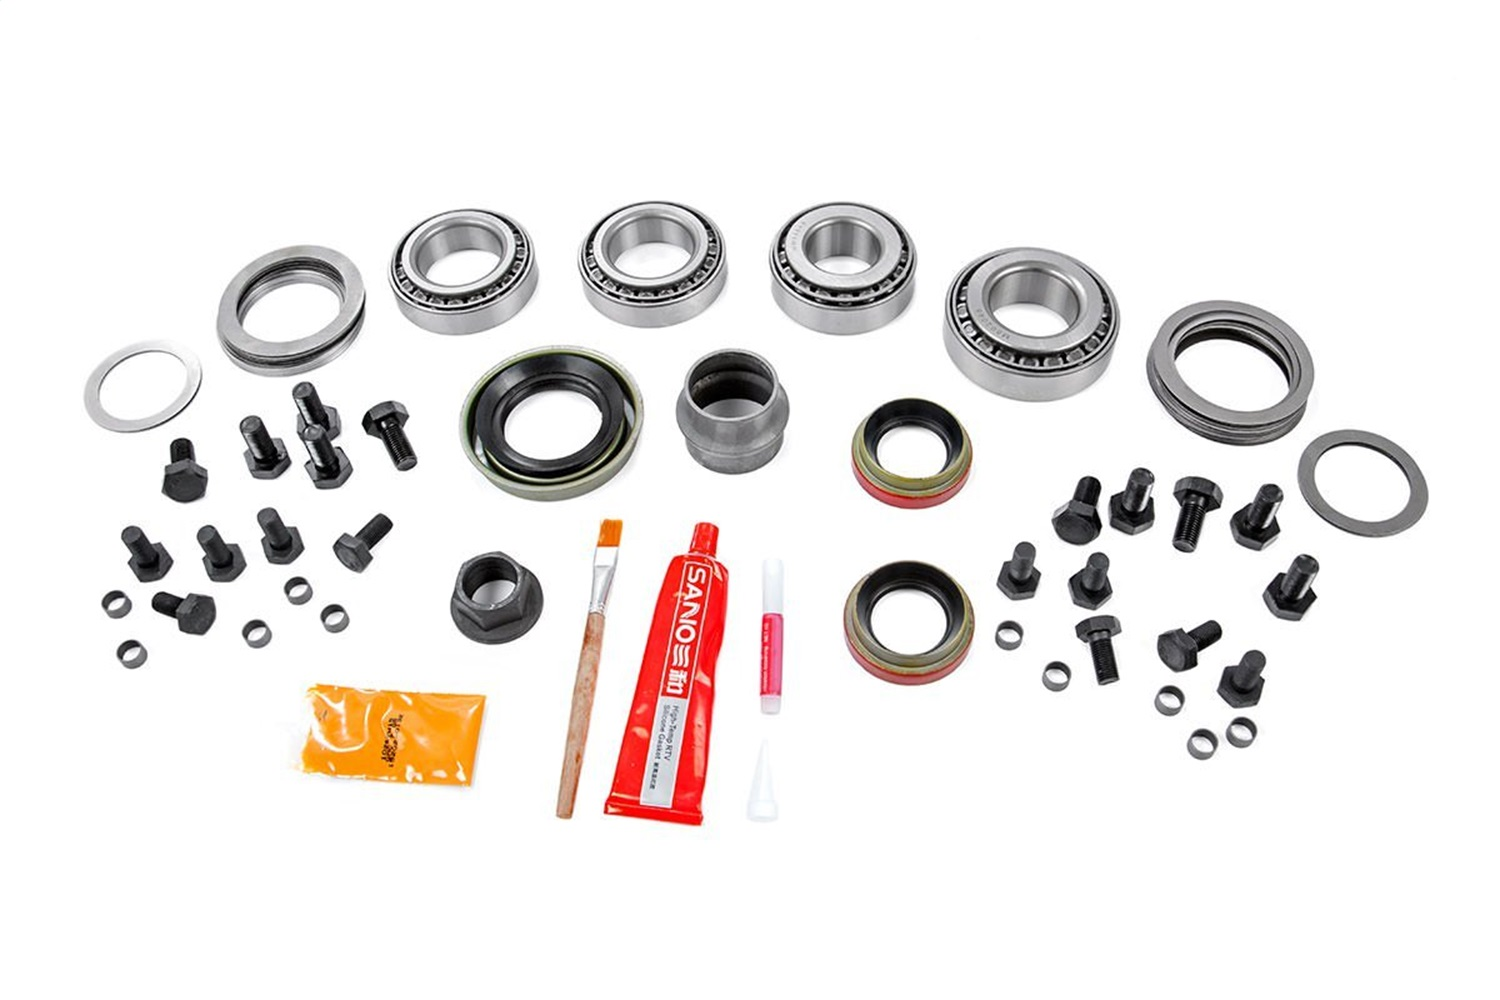 Rough Country 53000013 Ring And Pinion Master Install Kit